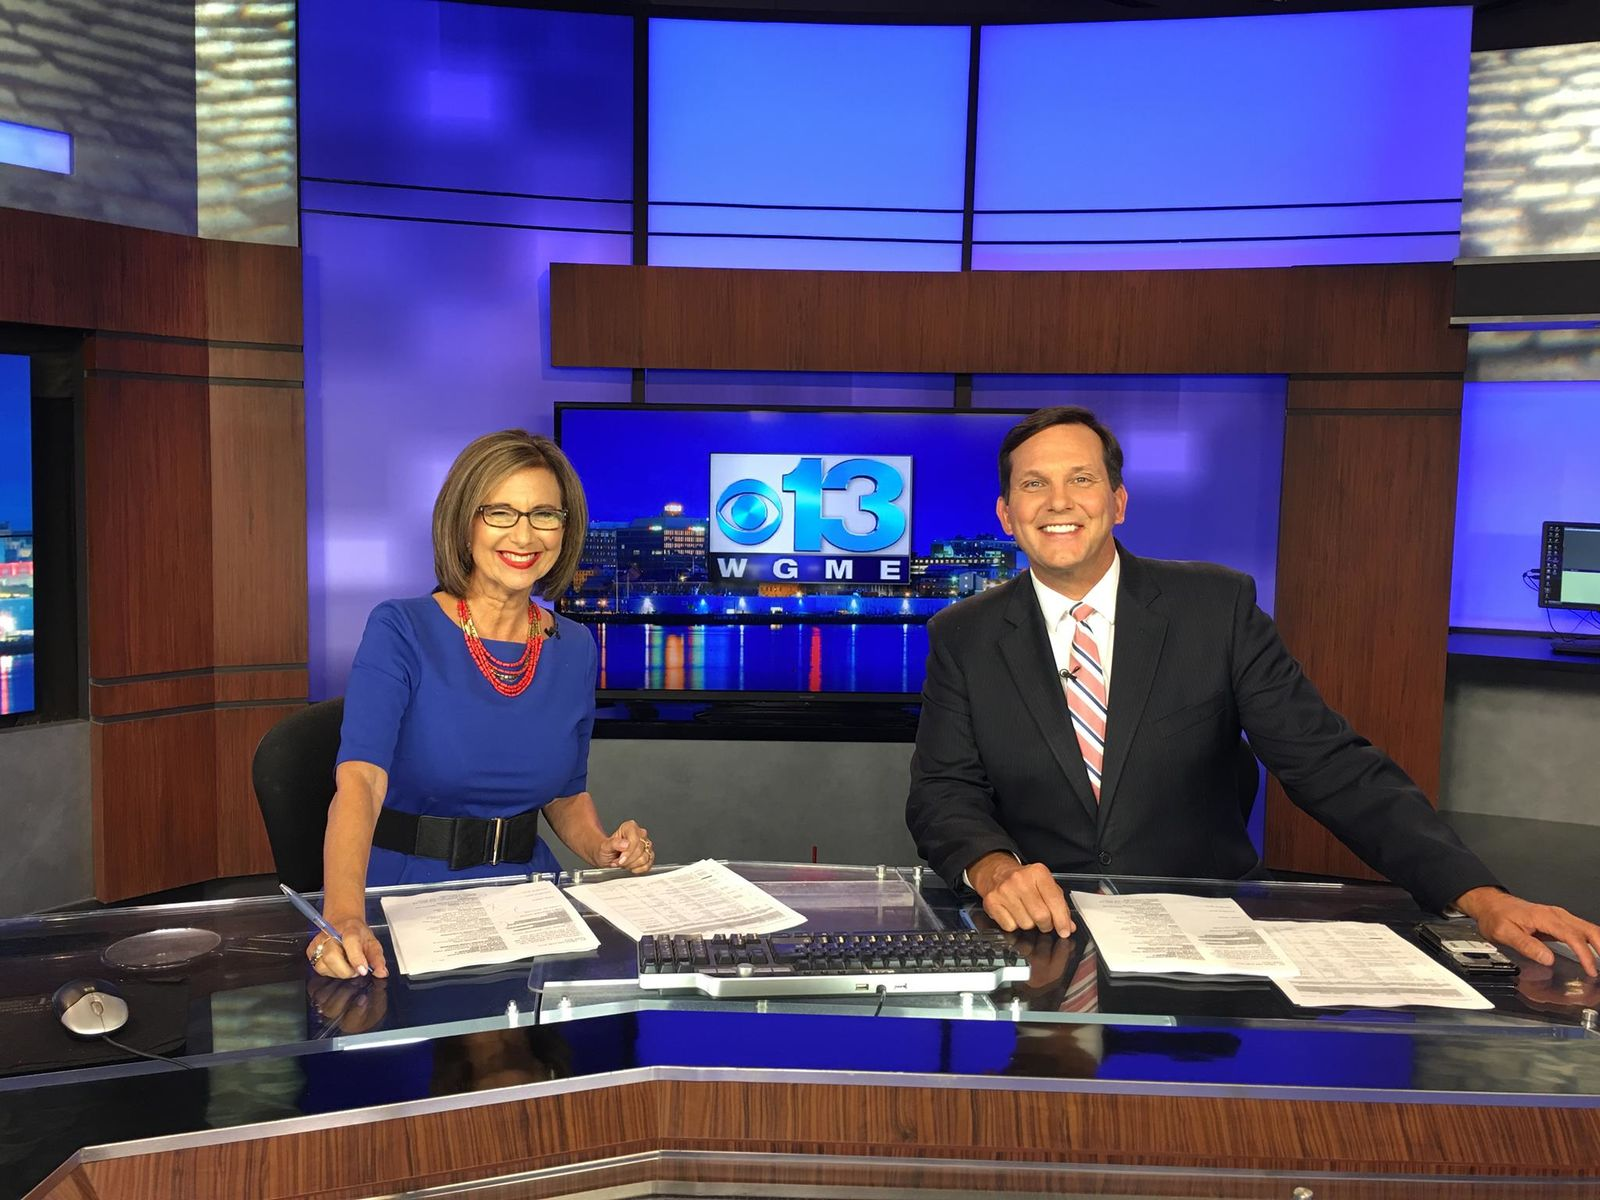 Kim Block and Gregg Lagerquist (WGME)